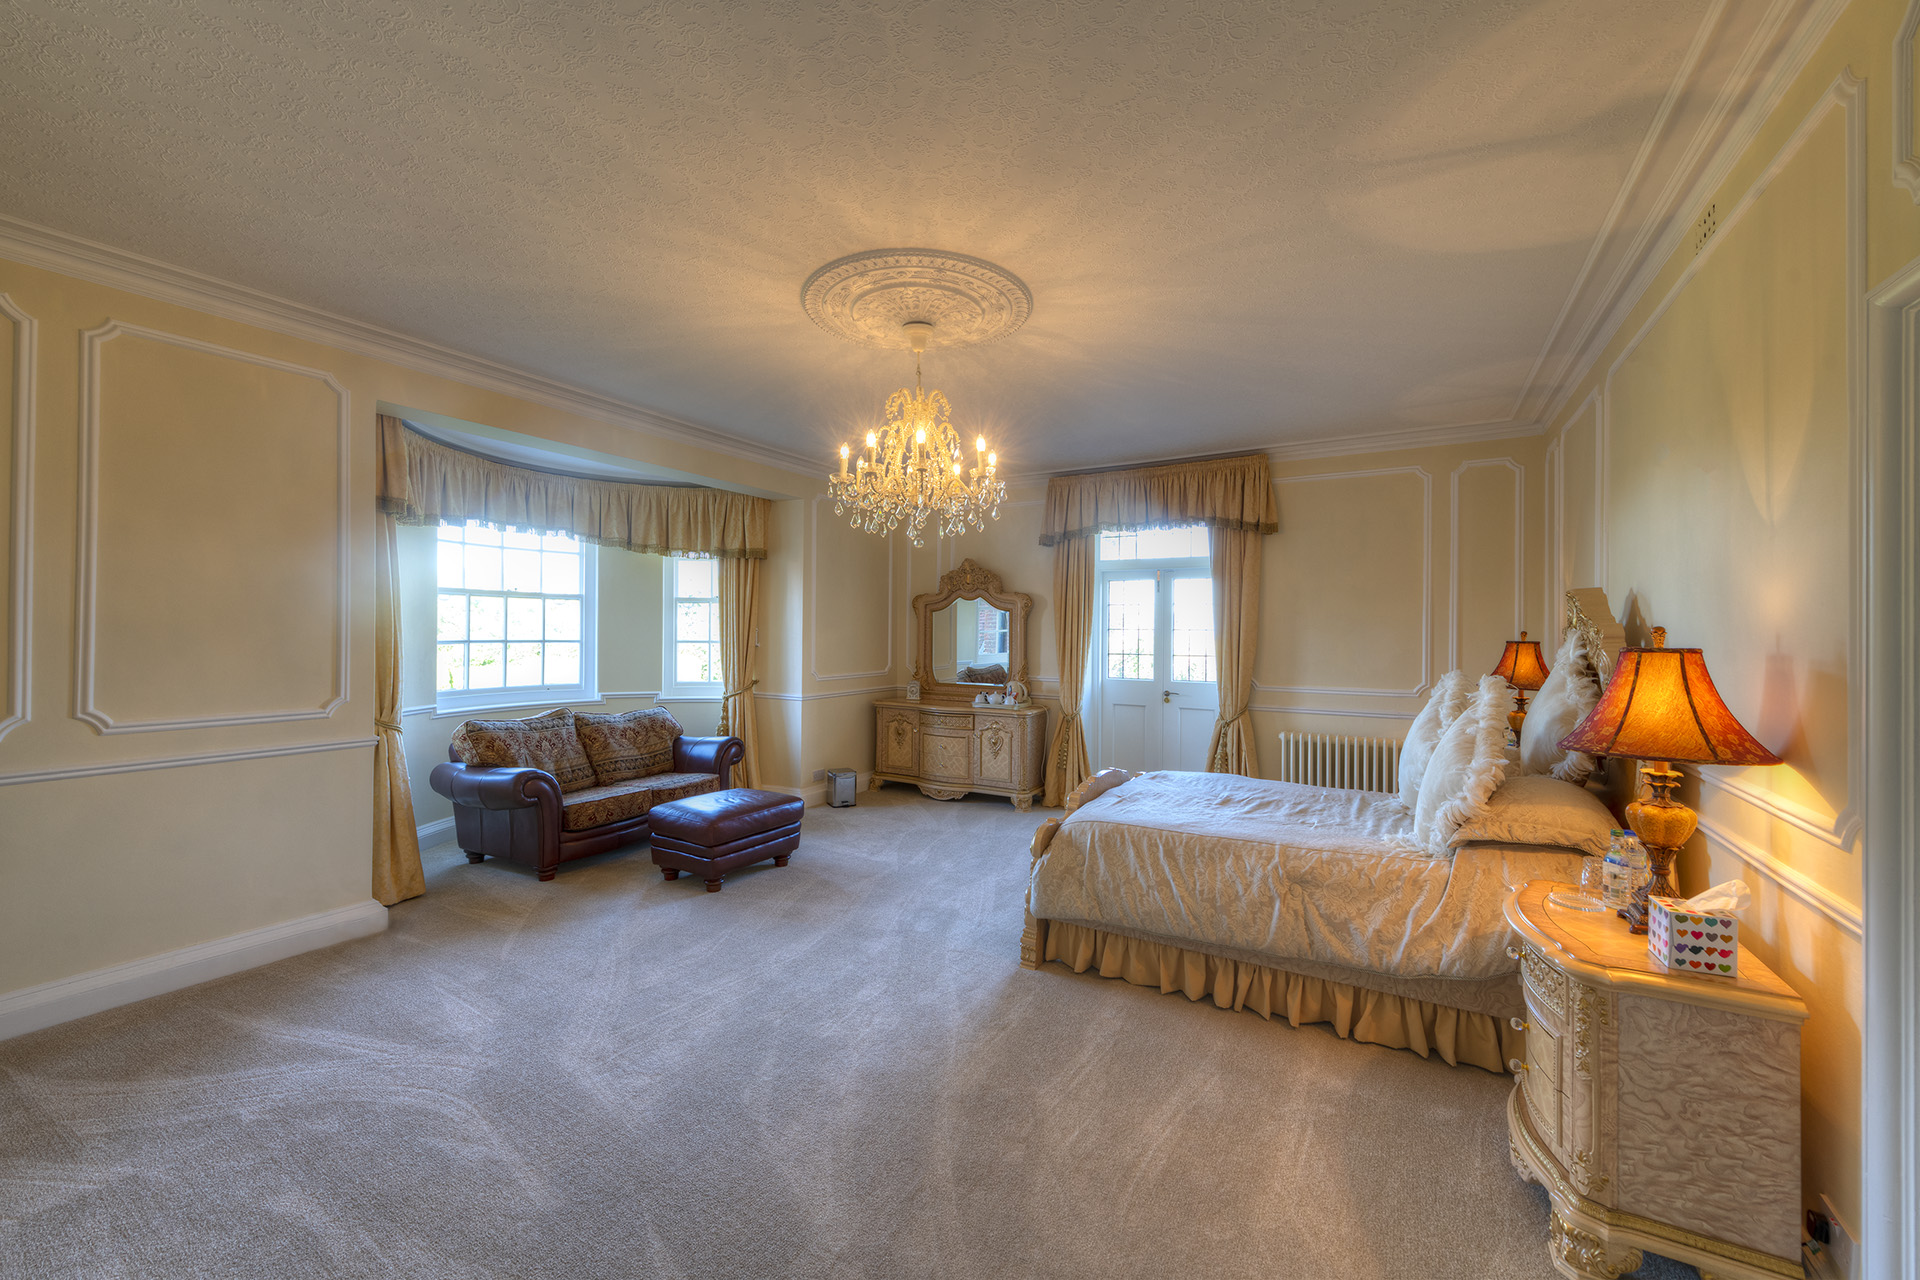 Bridal suite east sussex wedding venue